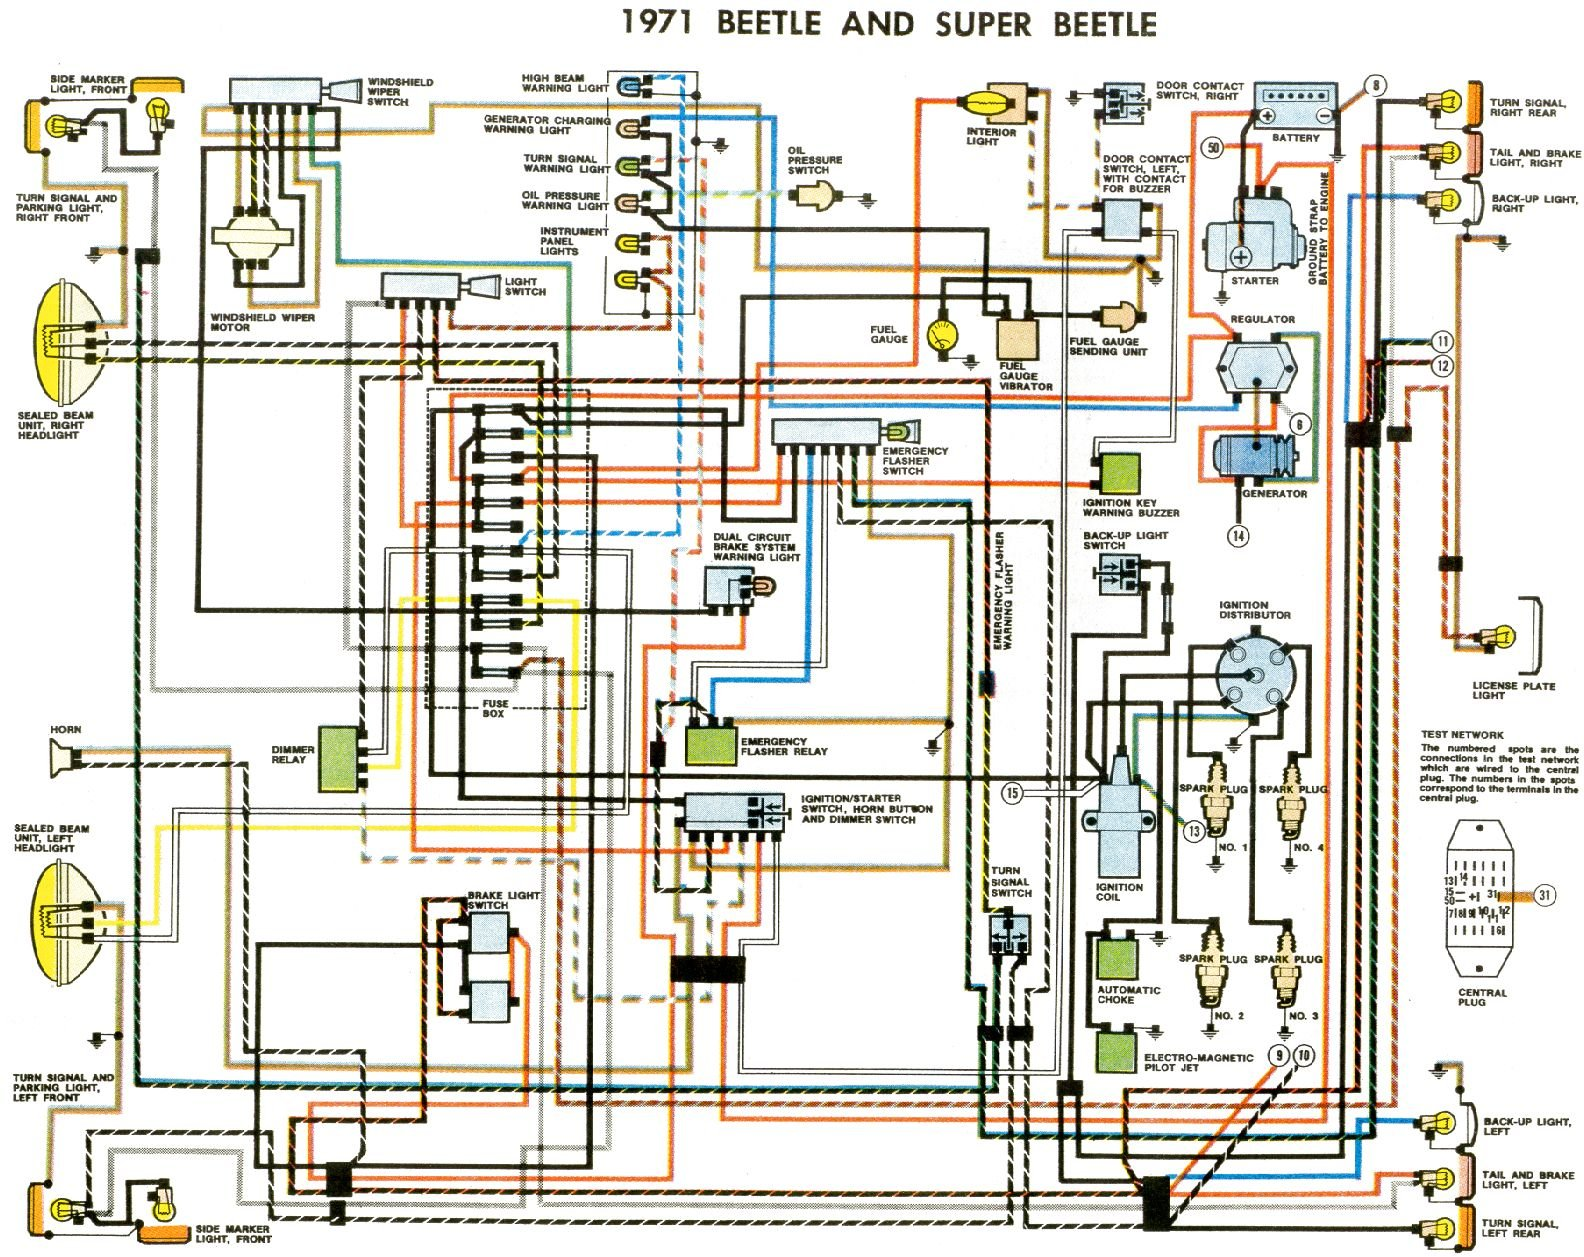 volkswagen up wiring diagram 1971 beetle wiring diagram (usa) | thegoldenbug.com datsun 620 pick up wiring diagram